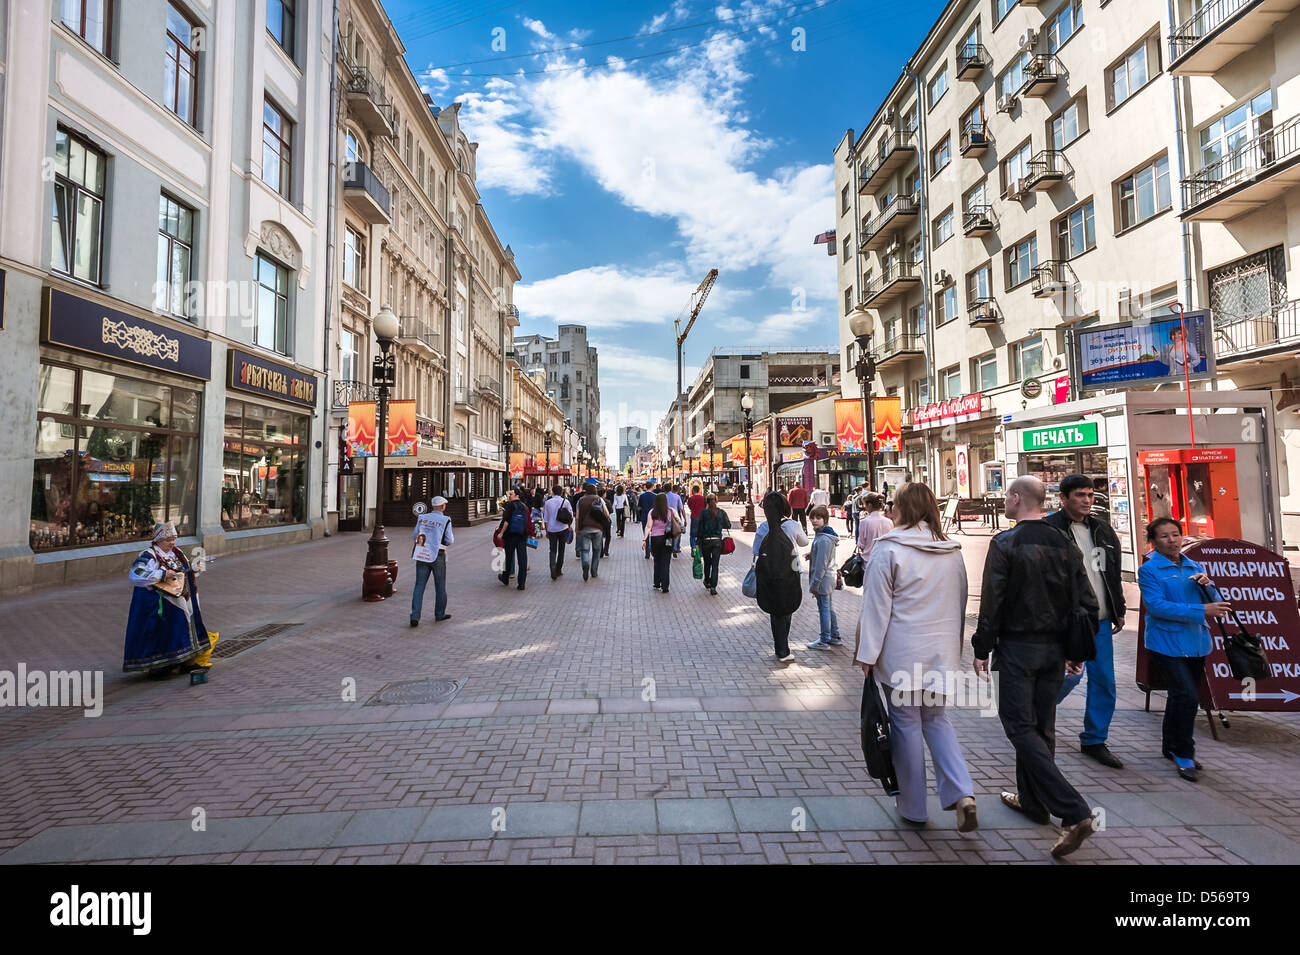 arbat pedestrian street photos arbat pedestrian street images alamy. Black Bedroom Furniture Sets. Home Design Ideas